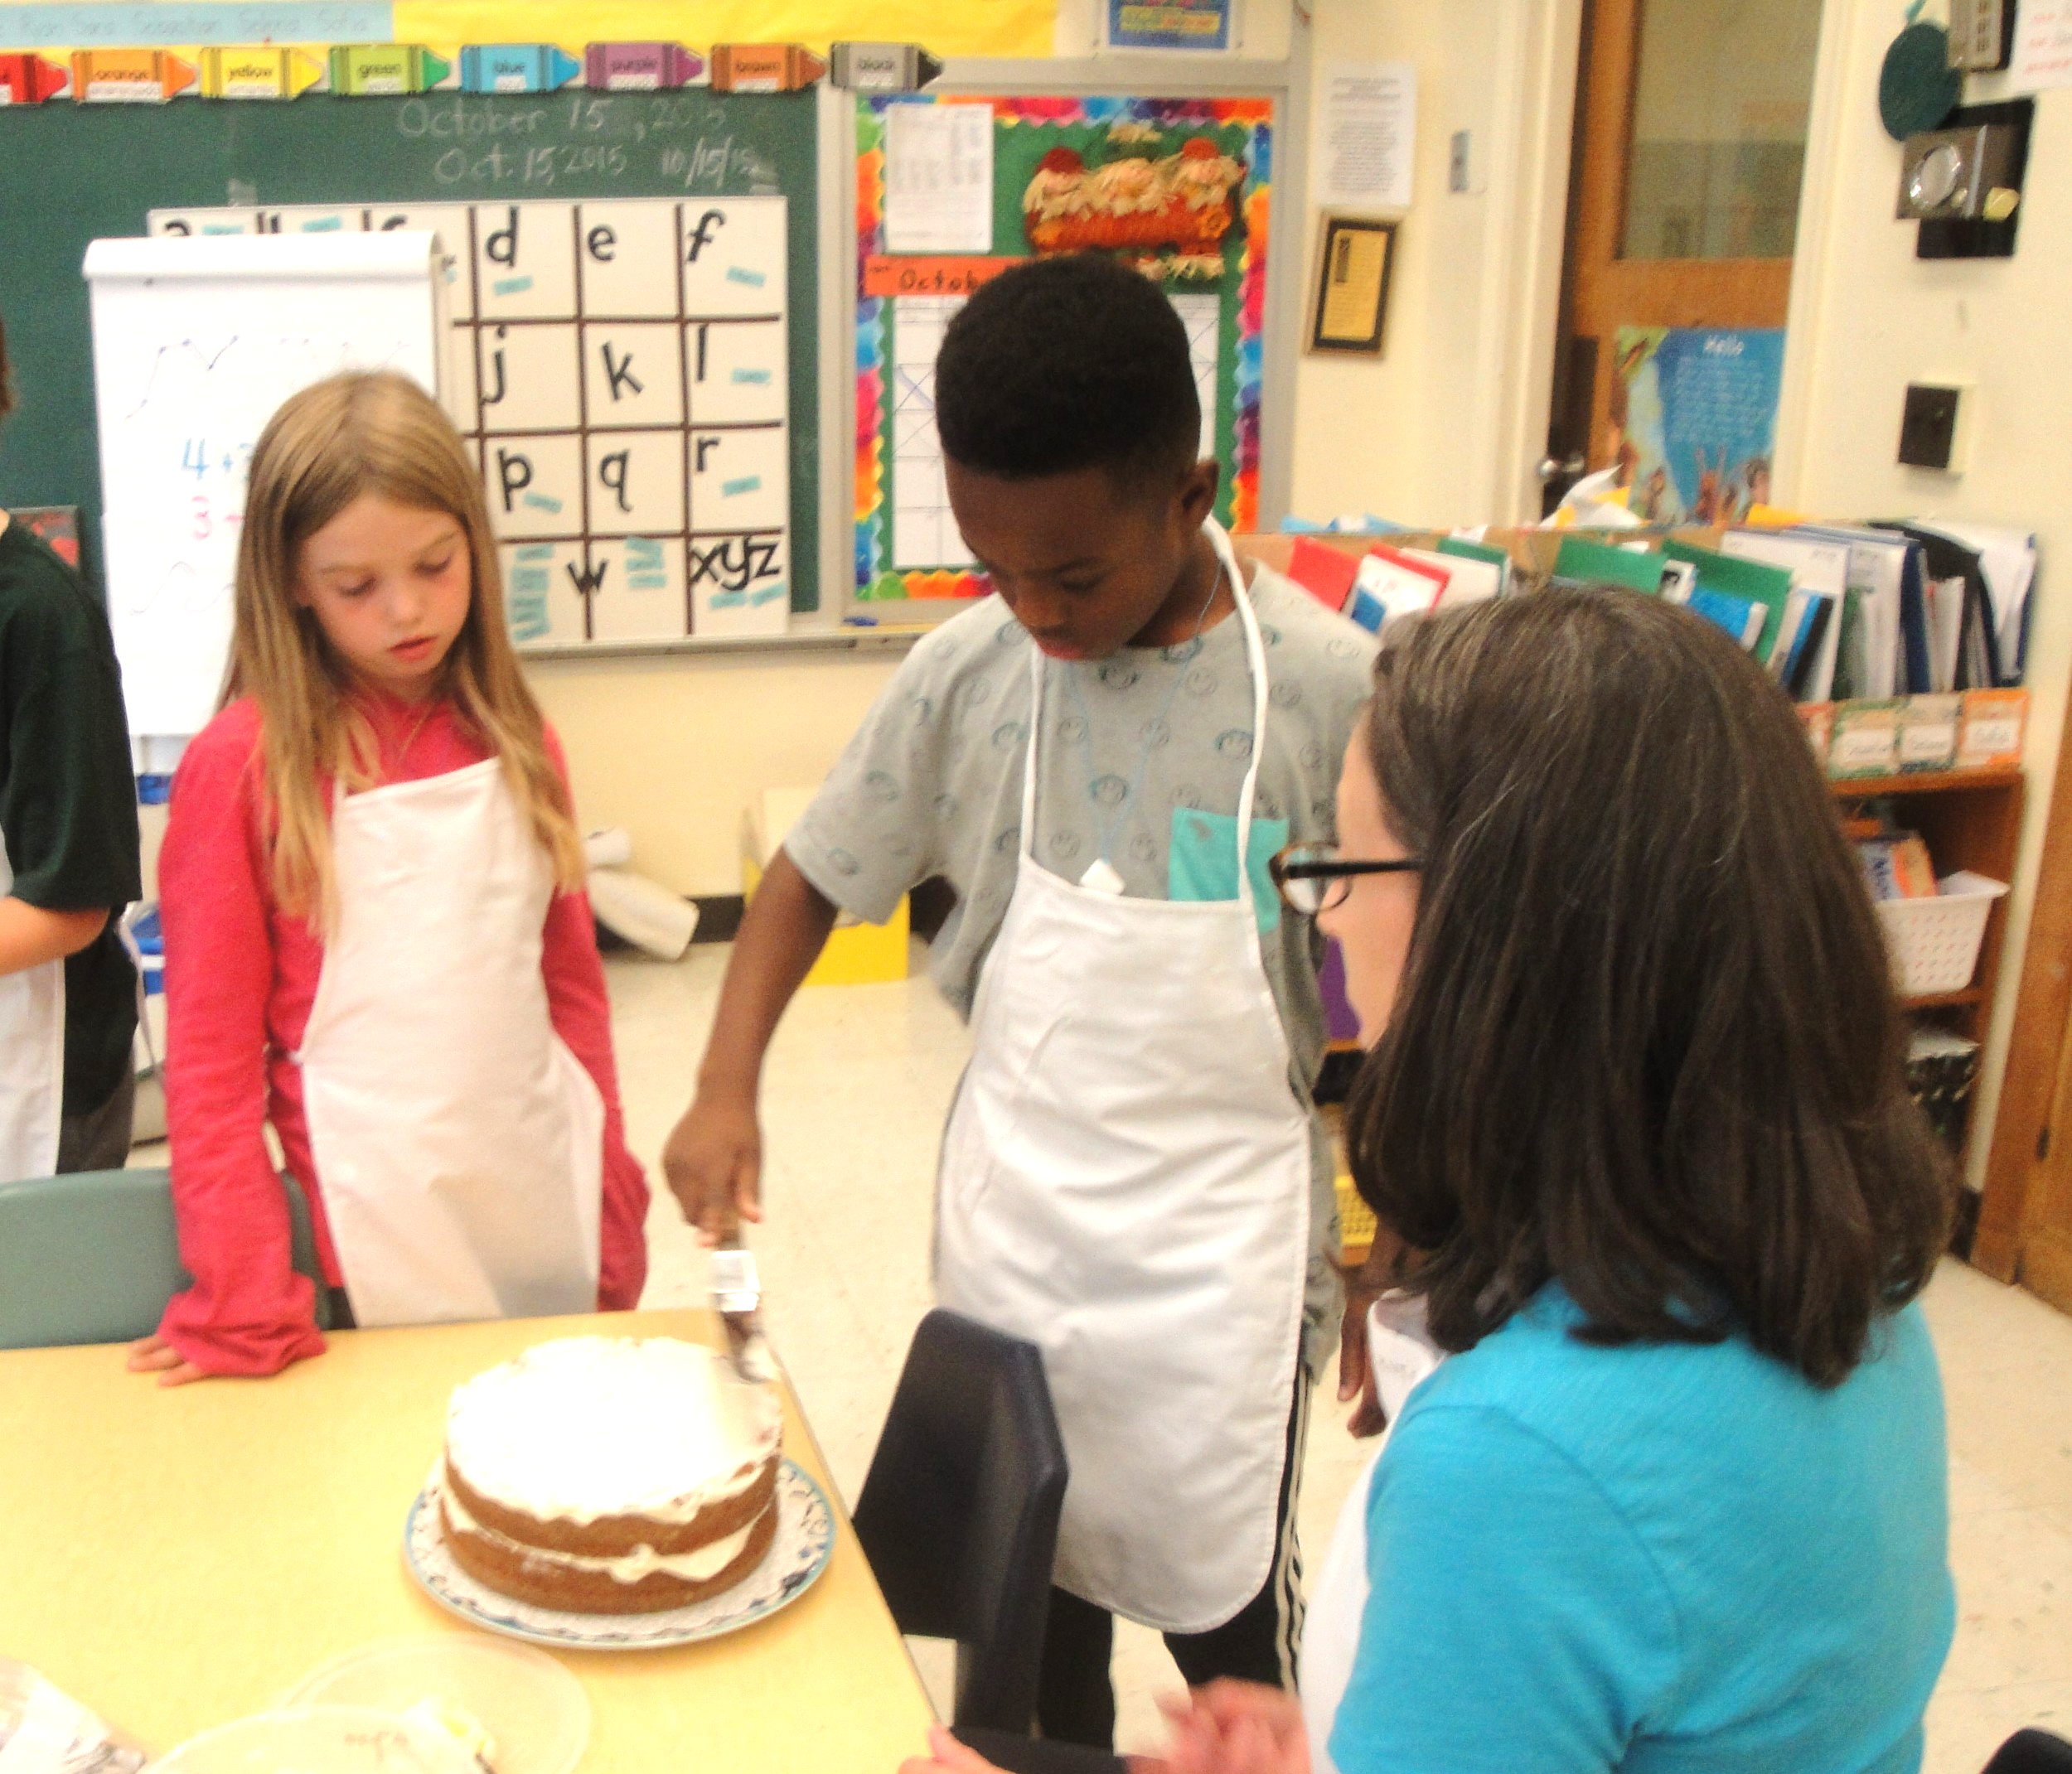 The children take turns frosting the cake.